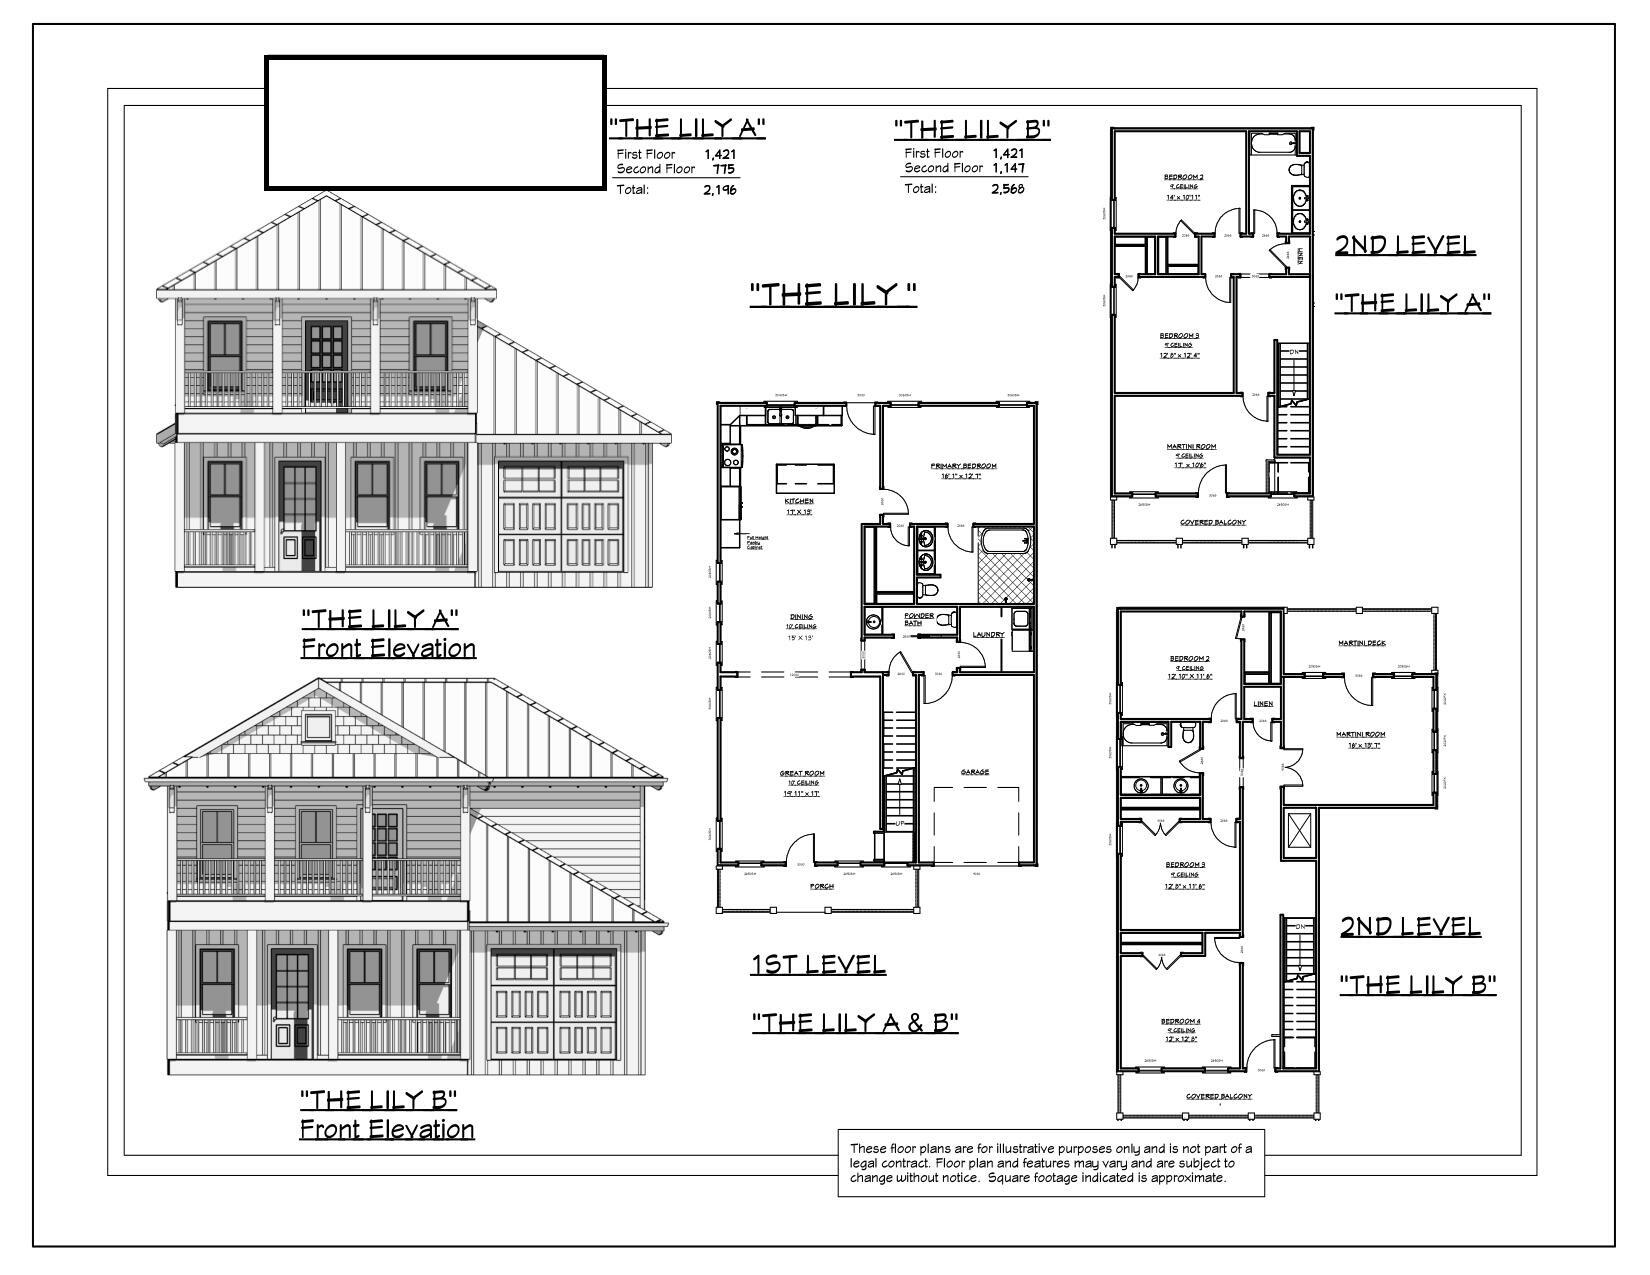 Bayview Estates is a New Community on the North side of Hwy 98 in the heart of Miramar Beach! This s